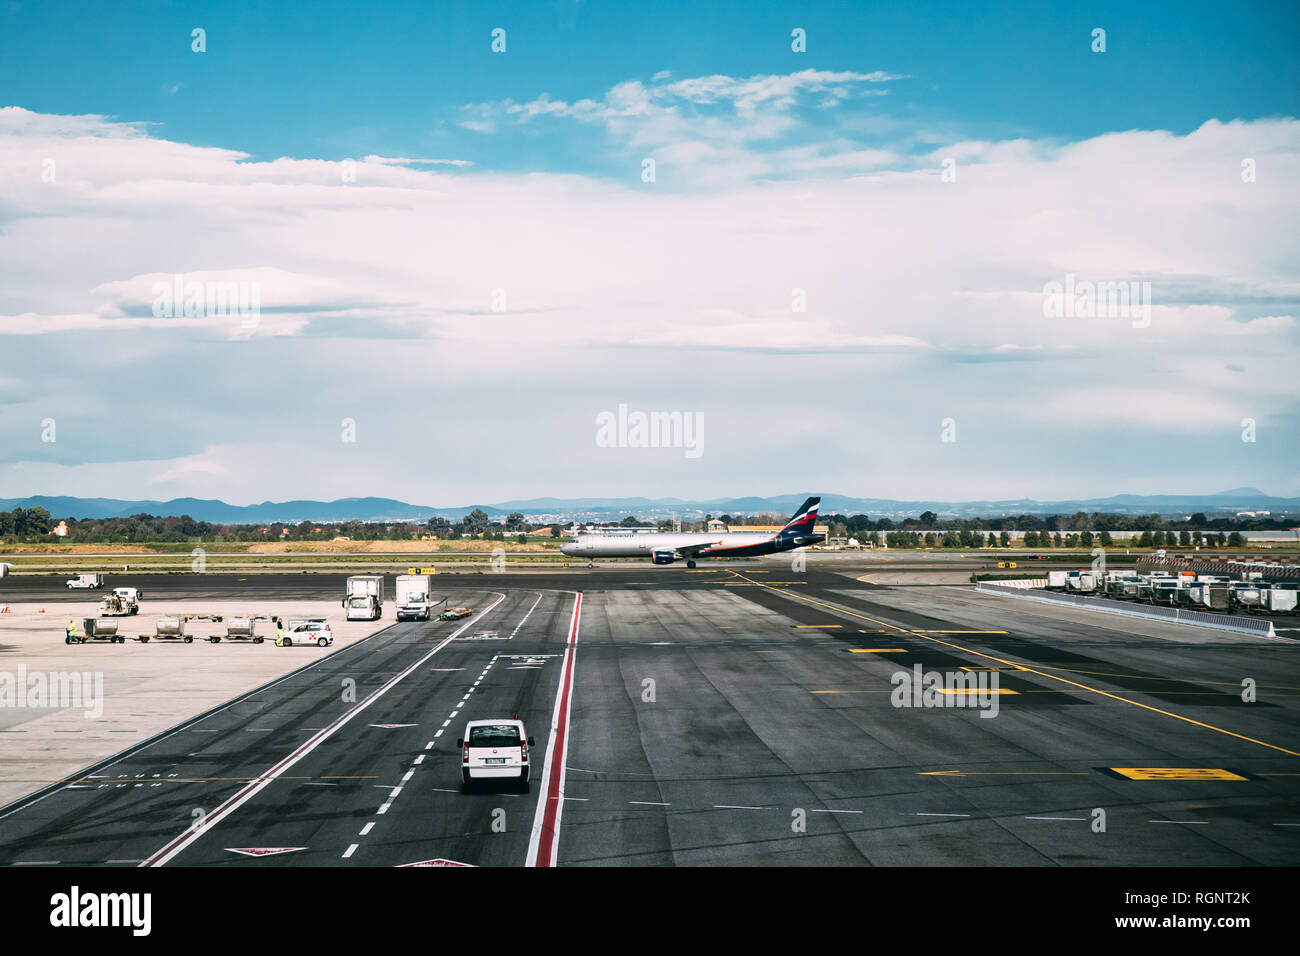 Rome, Italy - October 22, 2018: Aircraft Plane Stand On Runway At Rome–Fiumicino International Airport 'Leonardo Da Vinci' In Autumn Day - Stock Image